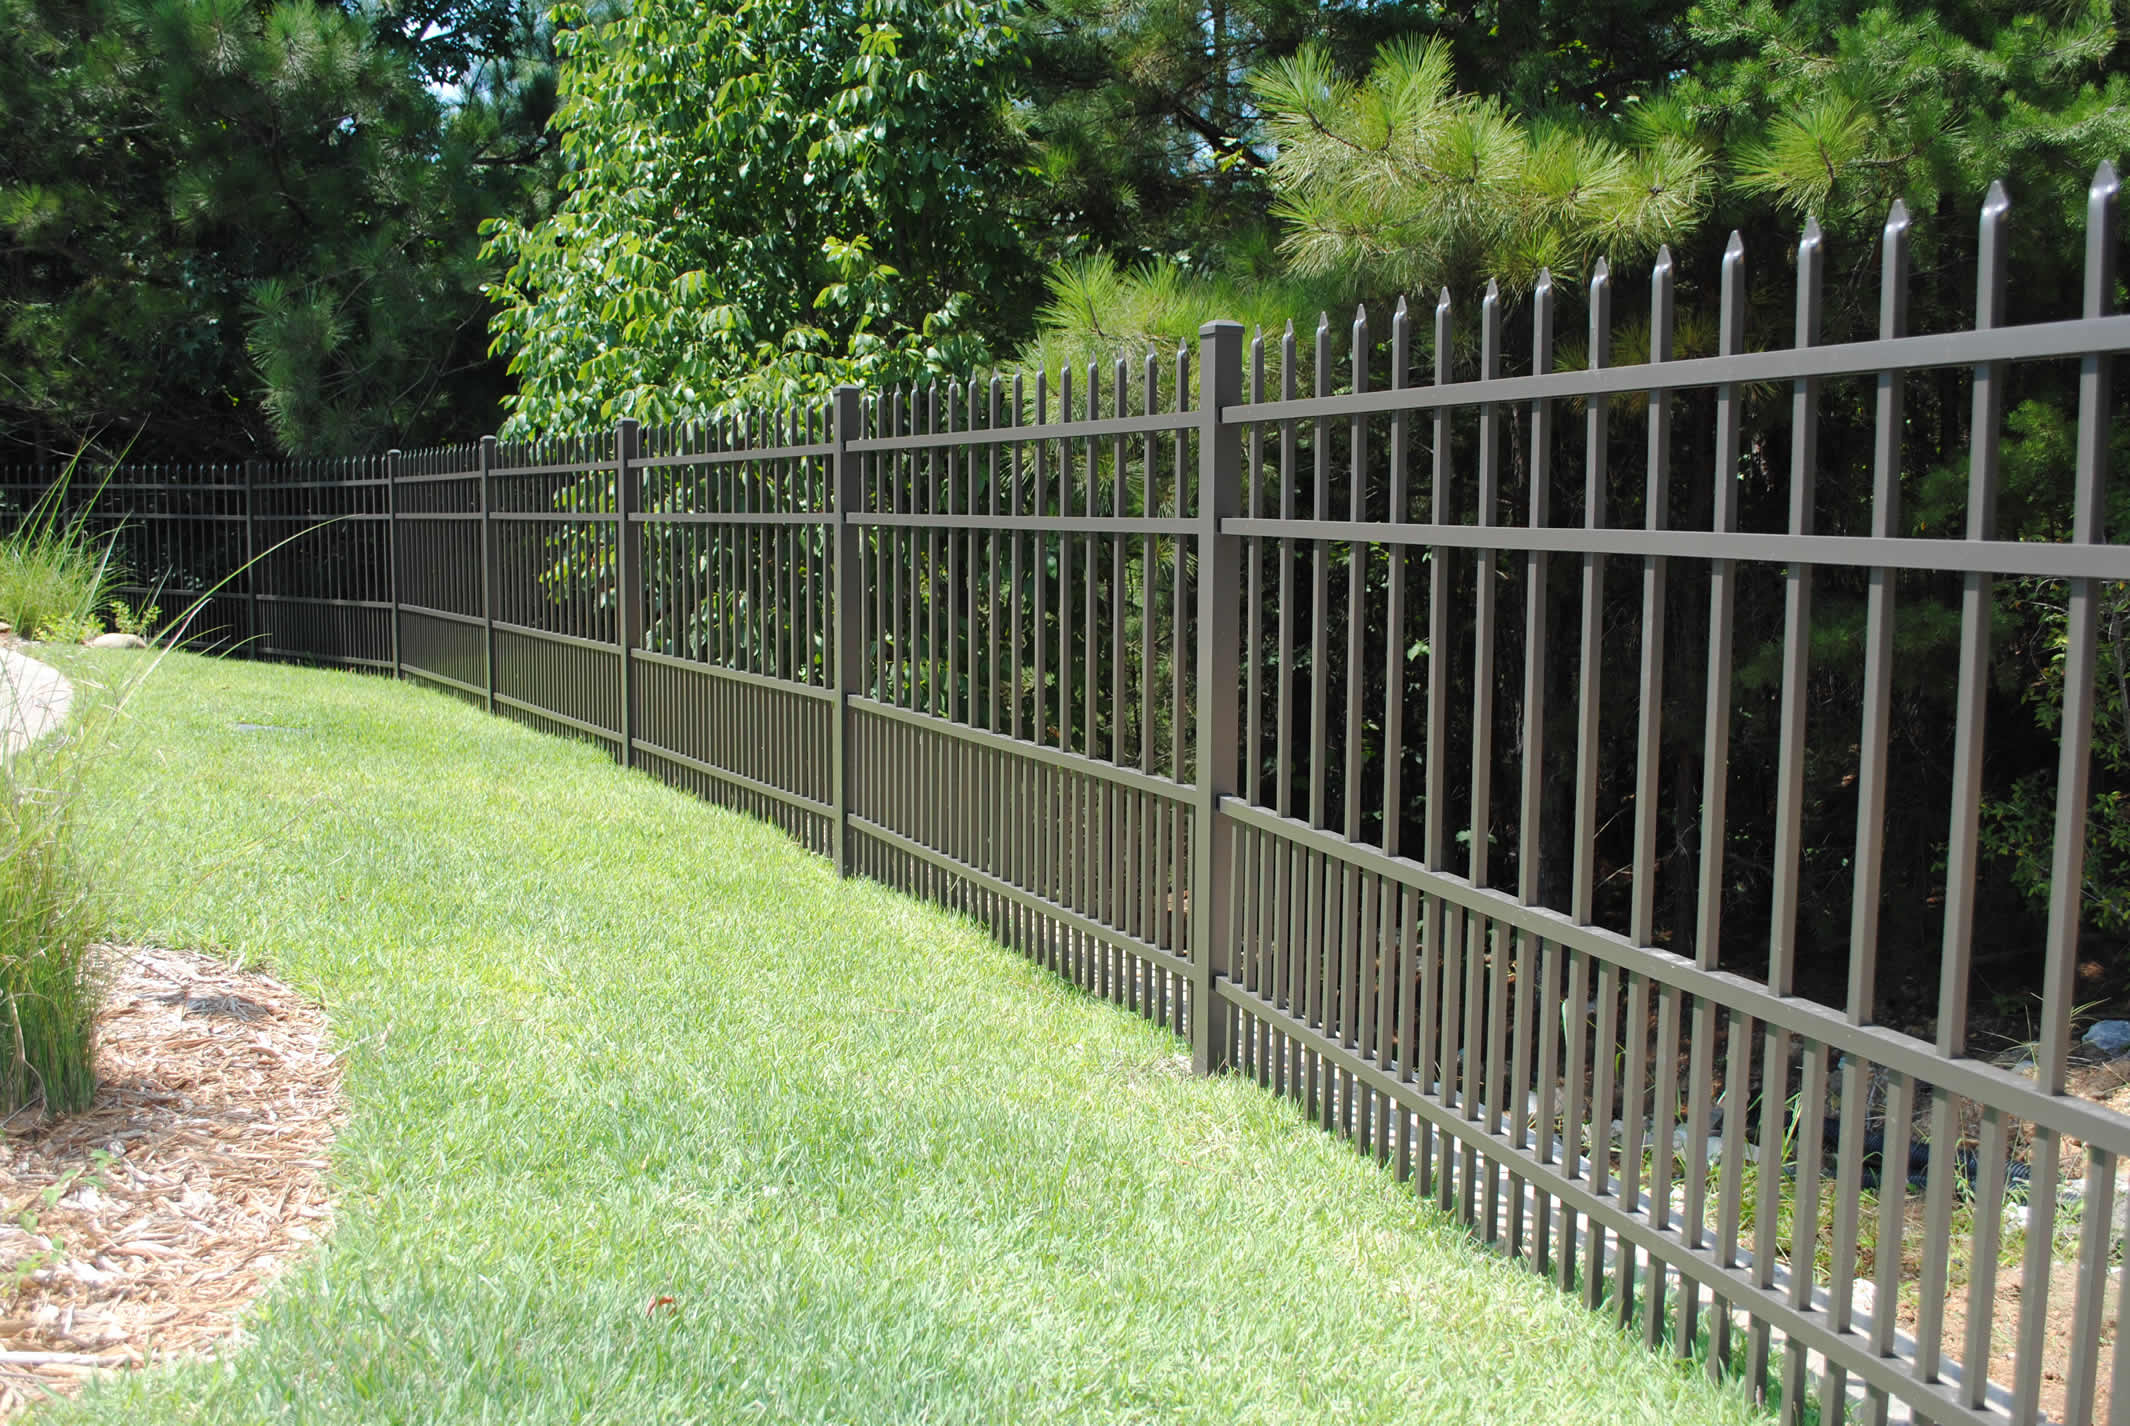 Commercial Decorative Fencing Birmingham Ornamental Fence